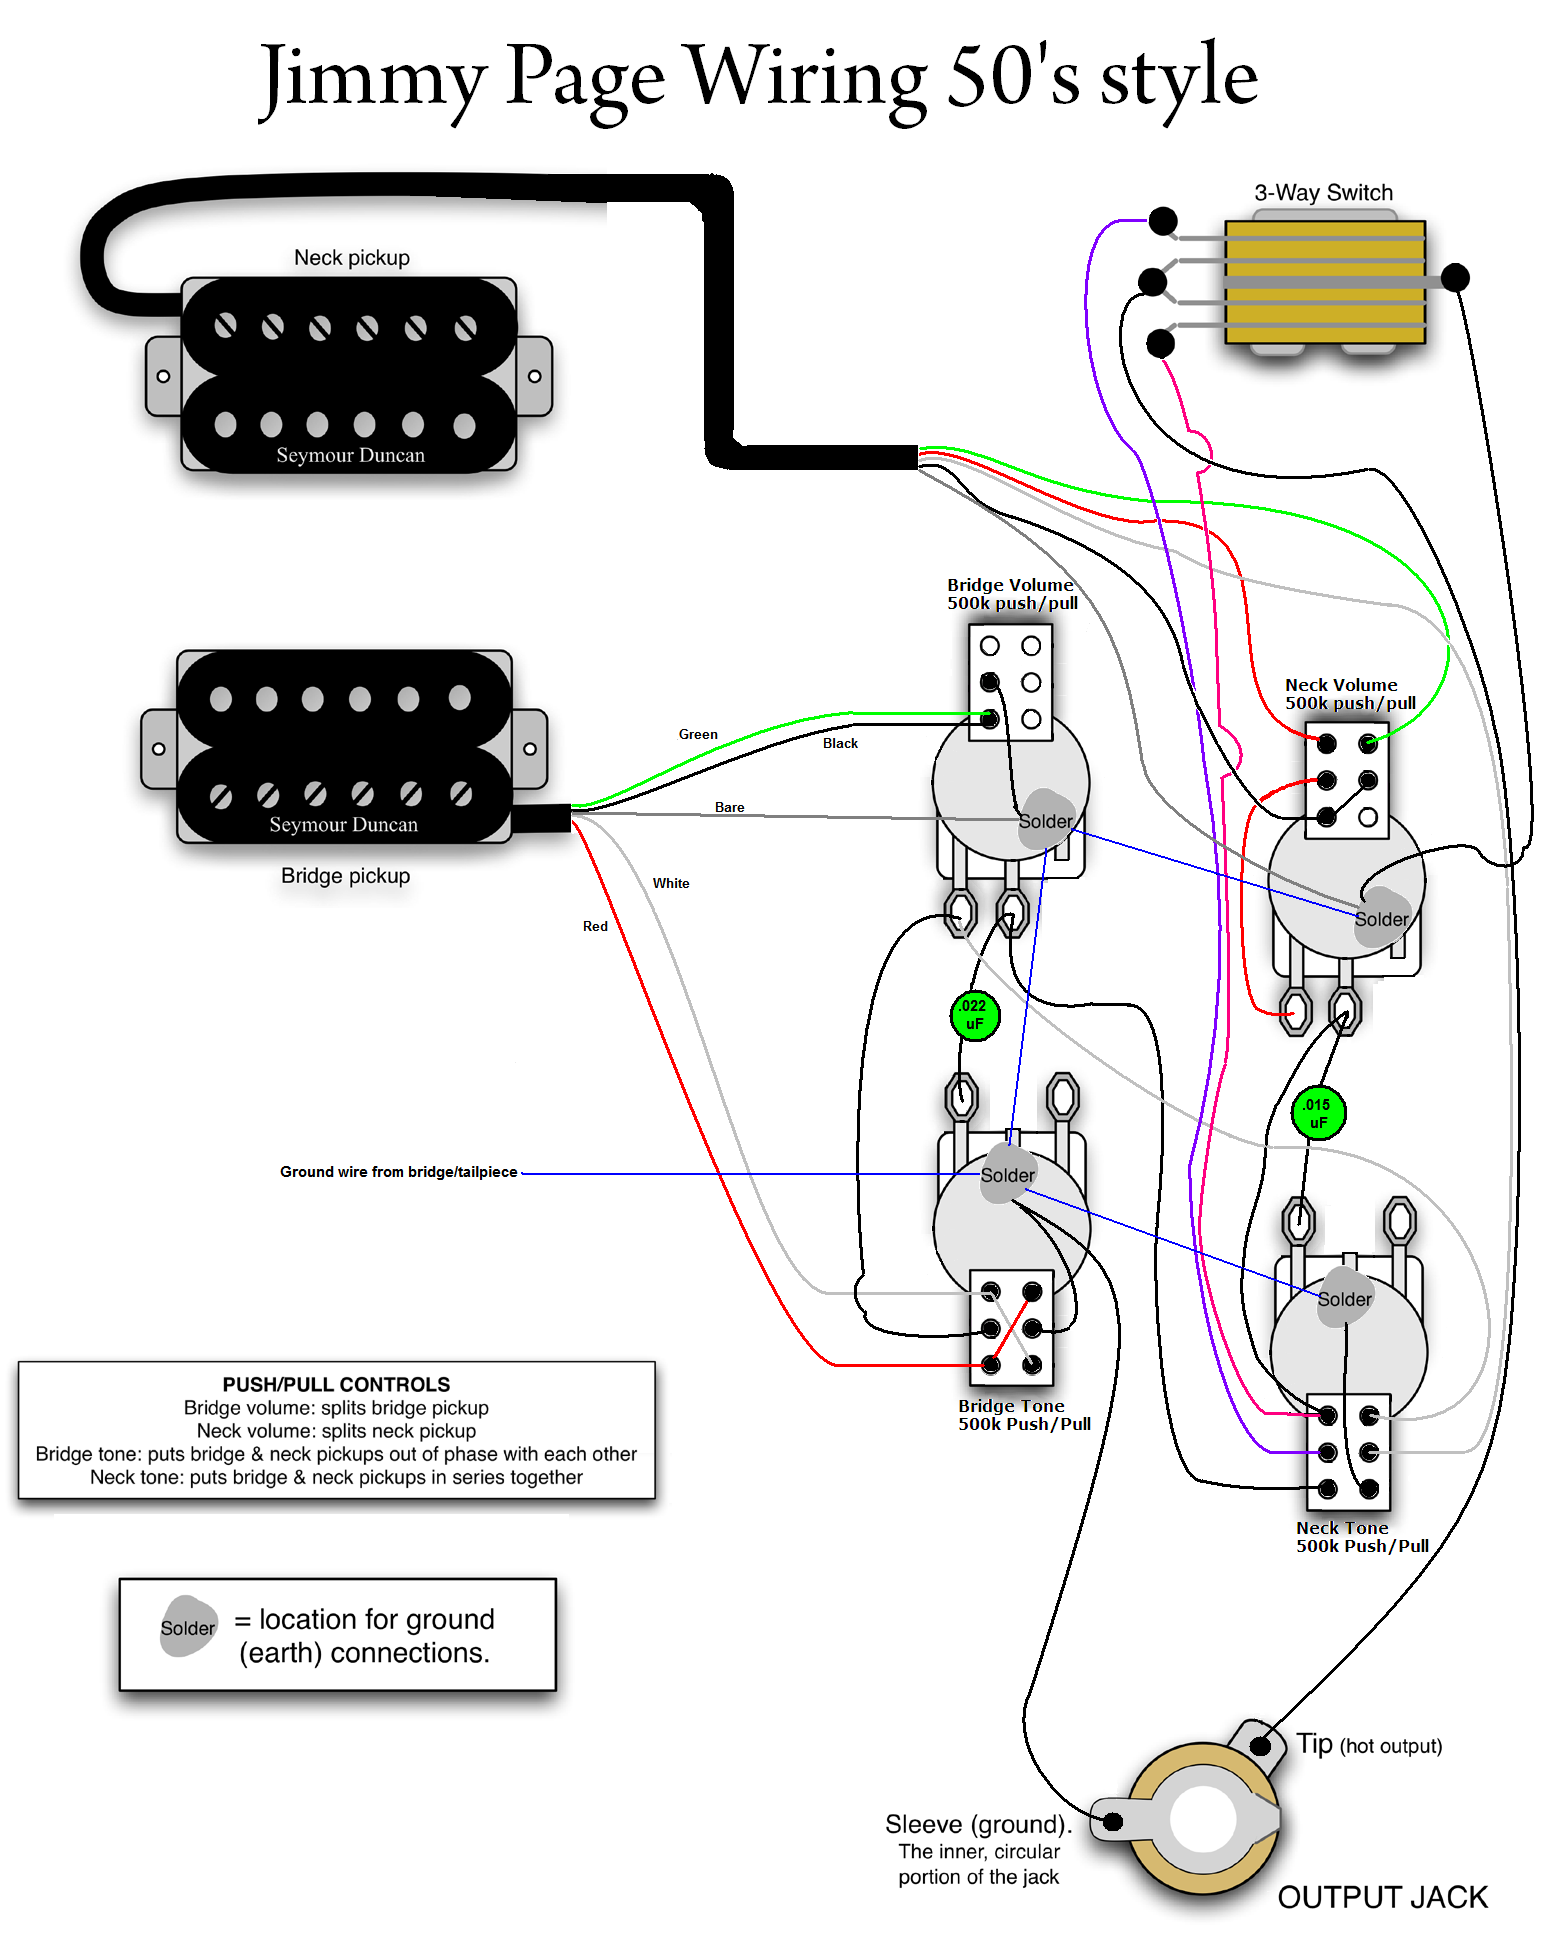 small resolution of jimmy page les paul wiring diagram wiring diagrams loljimmy page 50s wiring mylespaul com instruments in